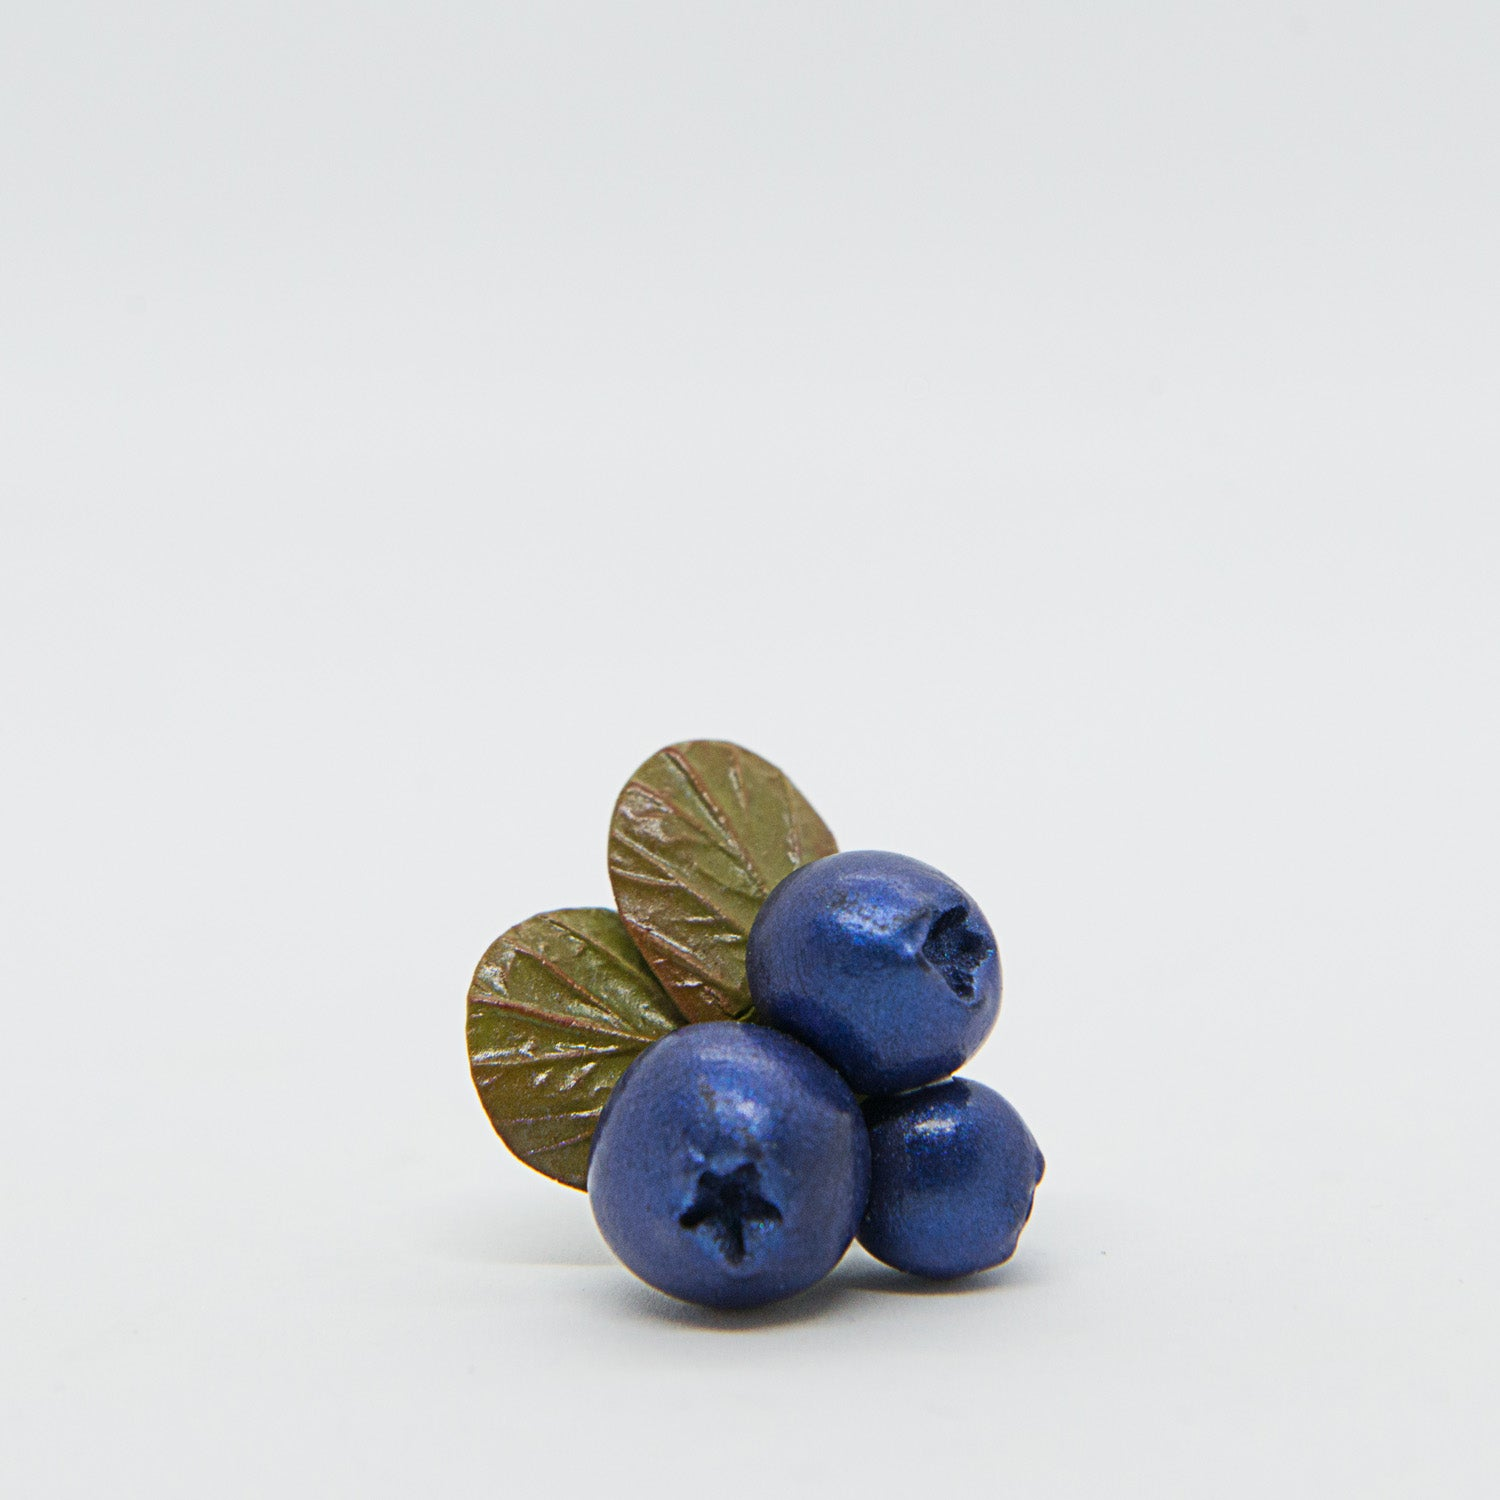 Pin with Blueberries